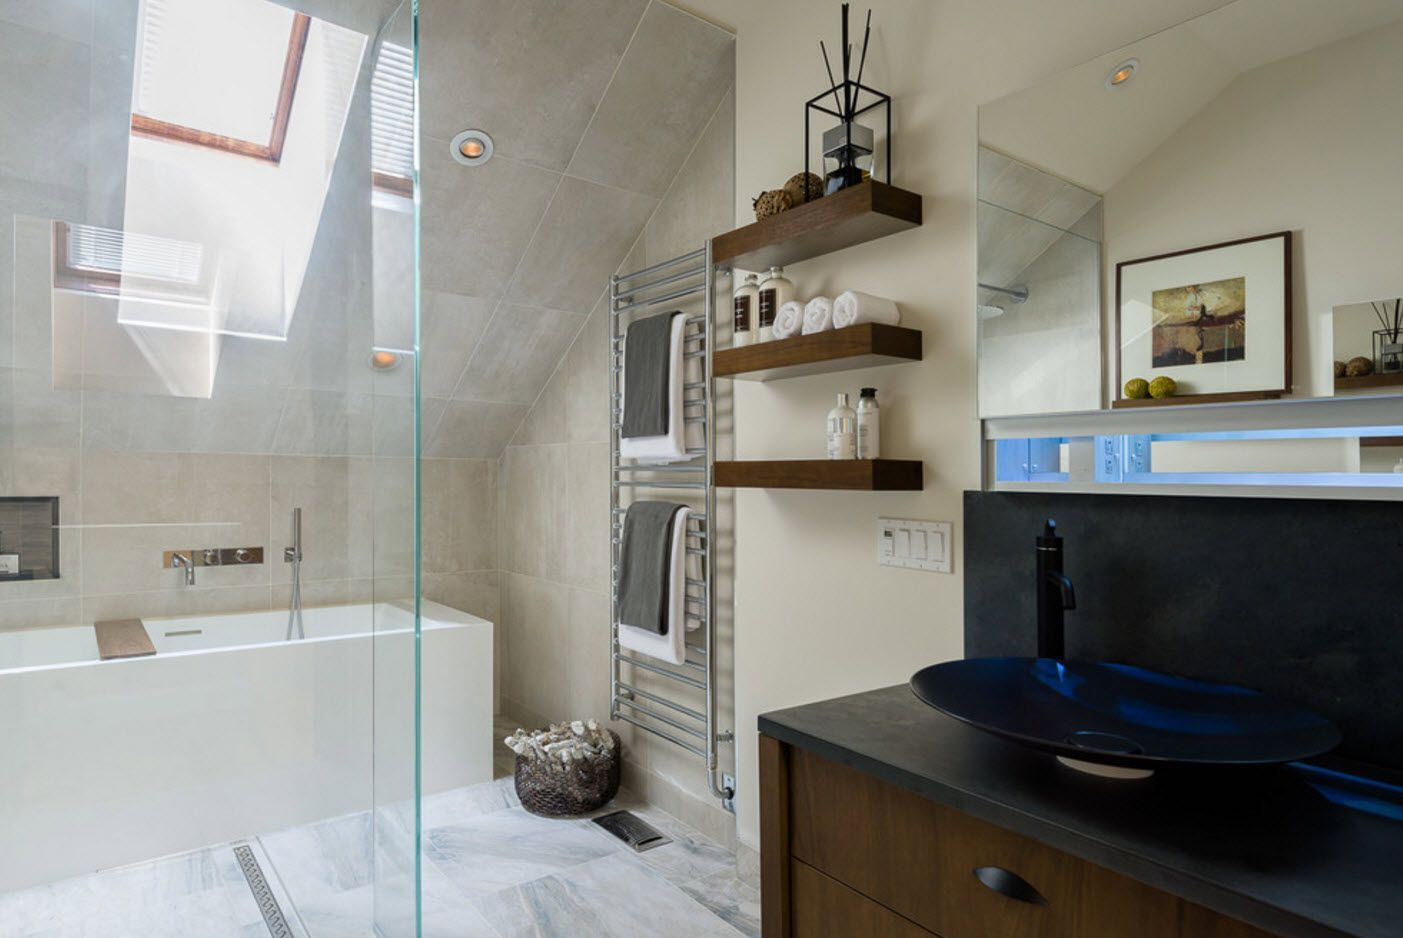 Loft bathroom full of glass surfaces and wooden racks